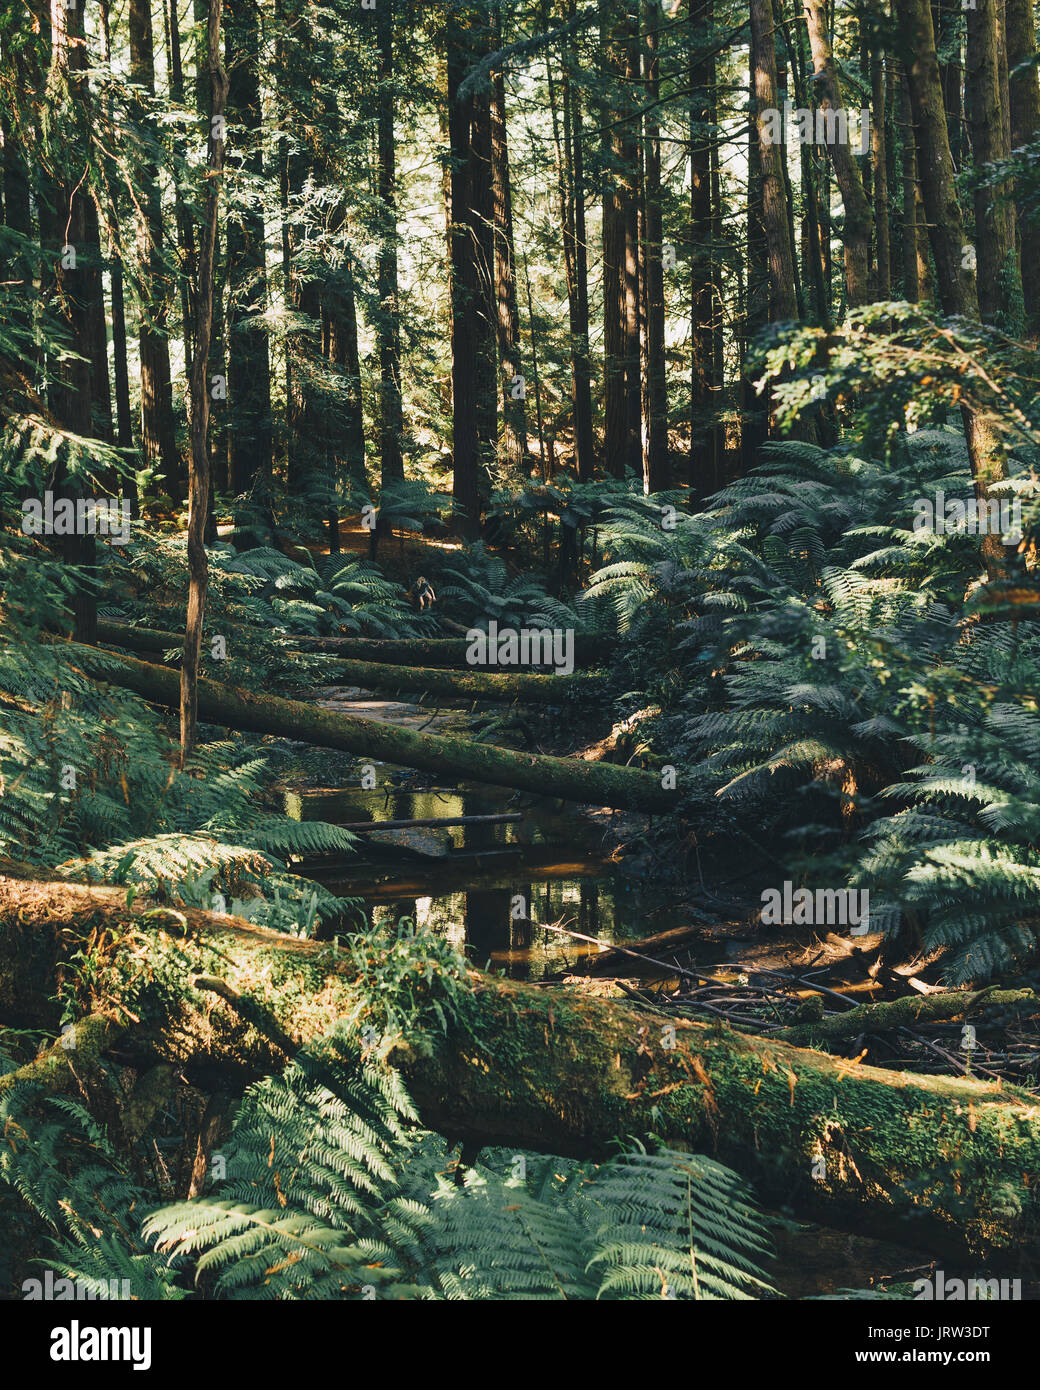 The beautiful Redwood Forest in the Otways bathing in the stunning warm afternoon light with ferns and a creek. - Stock Image